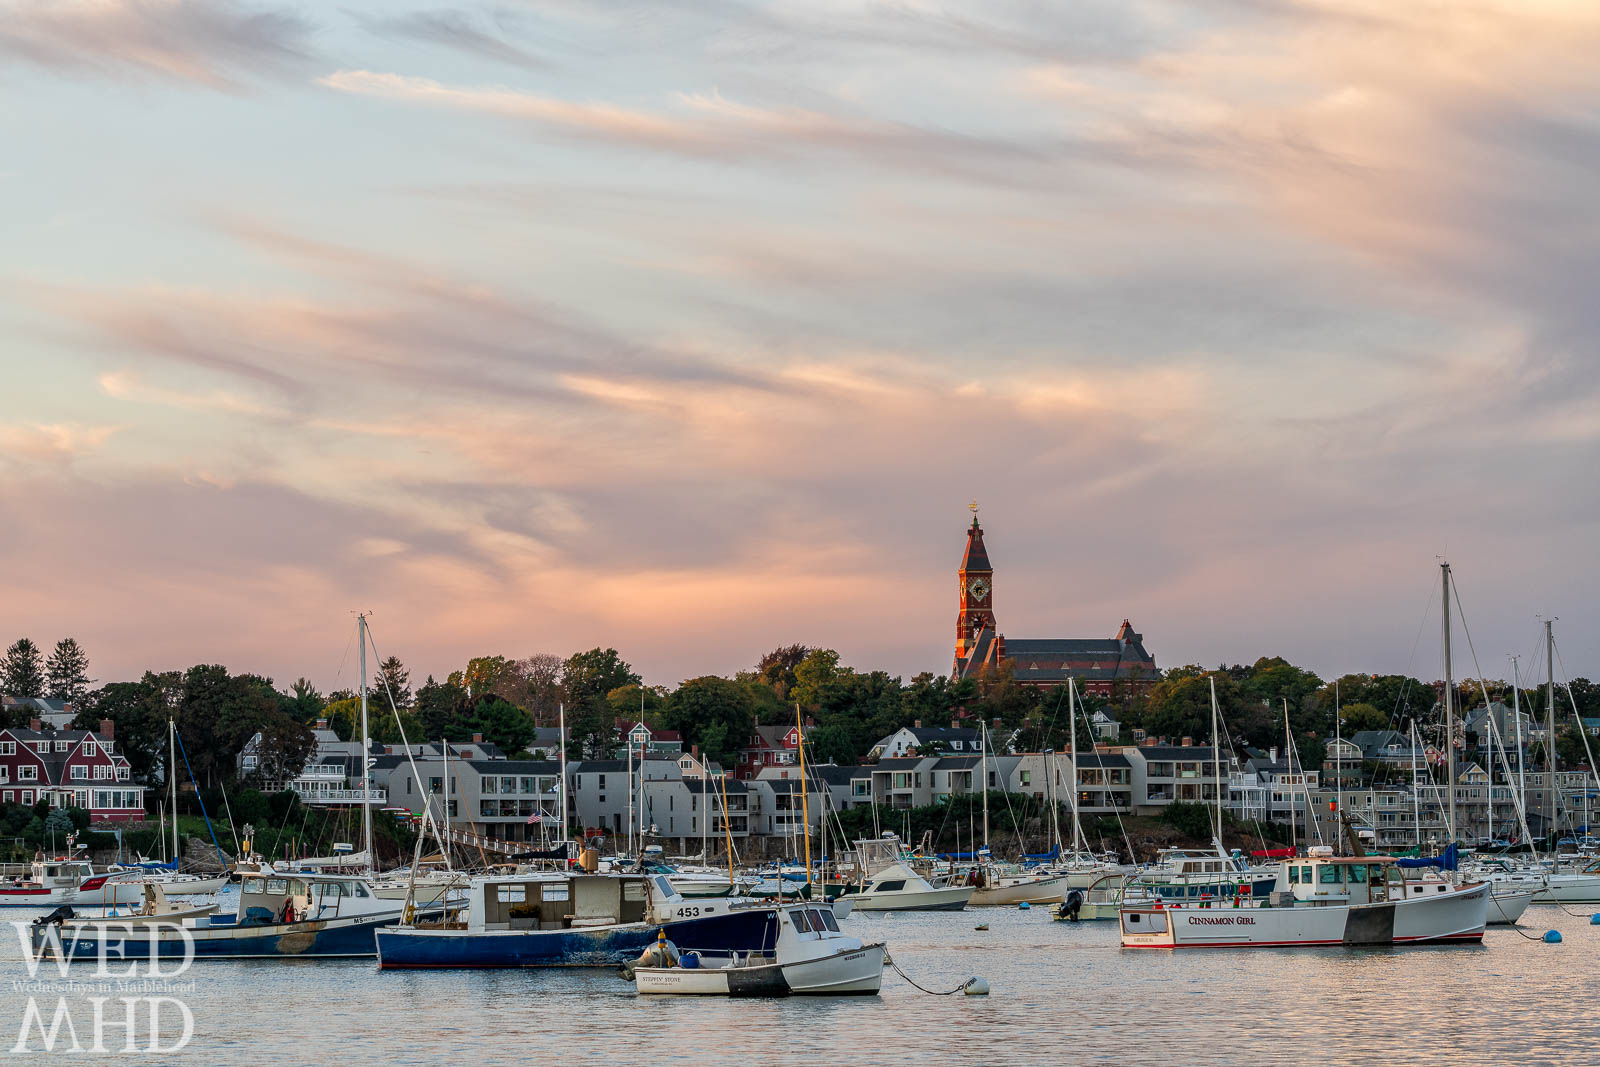 Abbot Hall seems to glow while being bathed in the sweet light of sunset on an early October evening in Marblehead